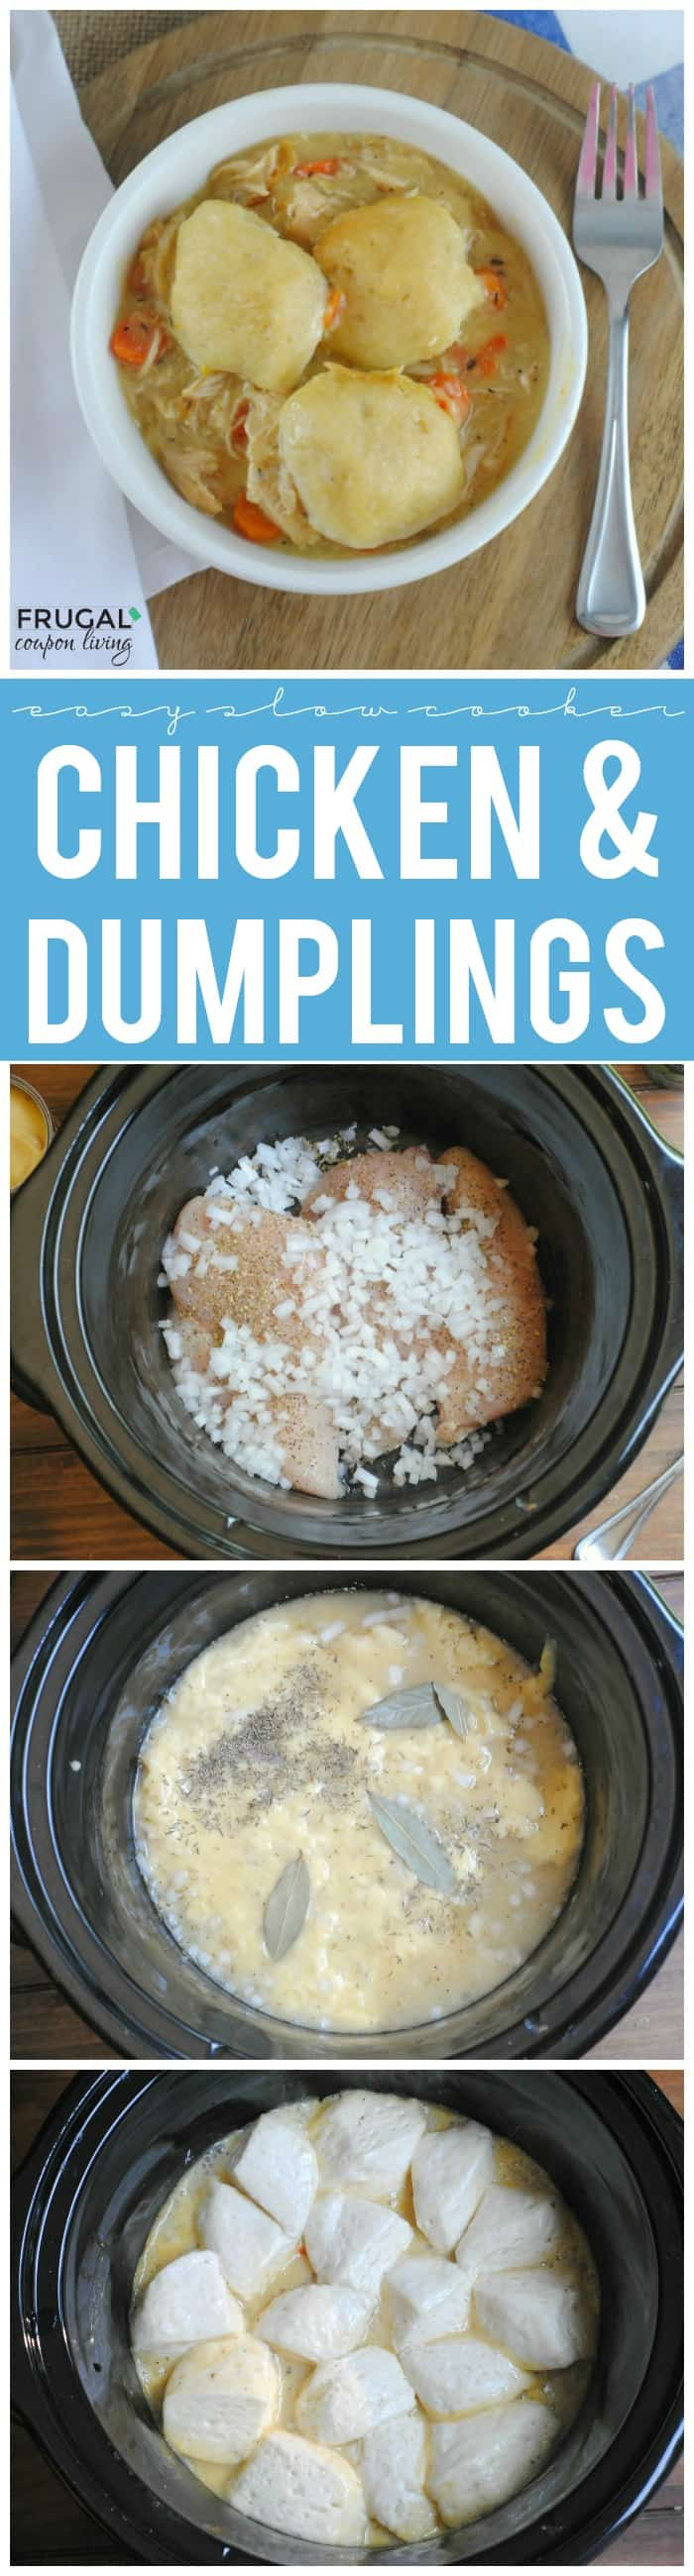 Easy Slow Cooker Chicken and Dumplings